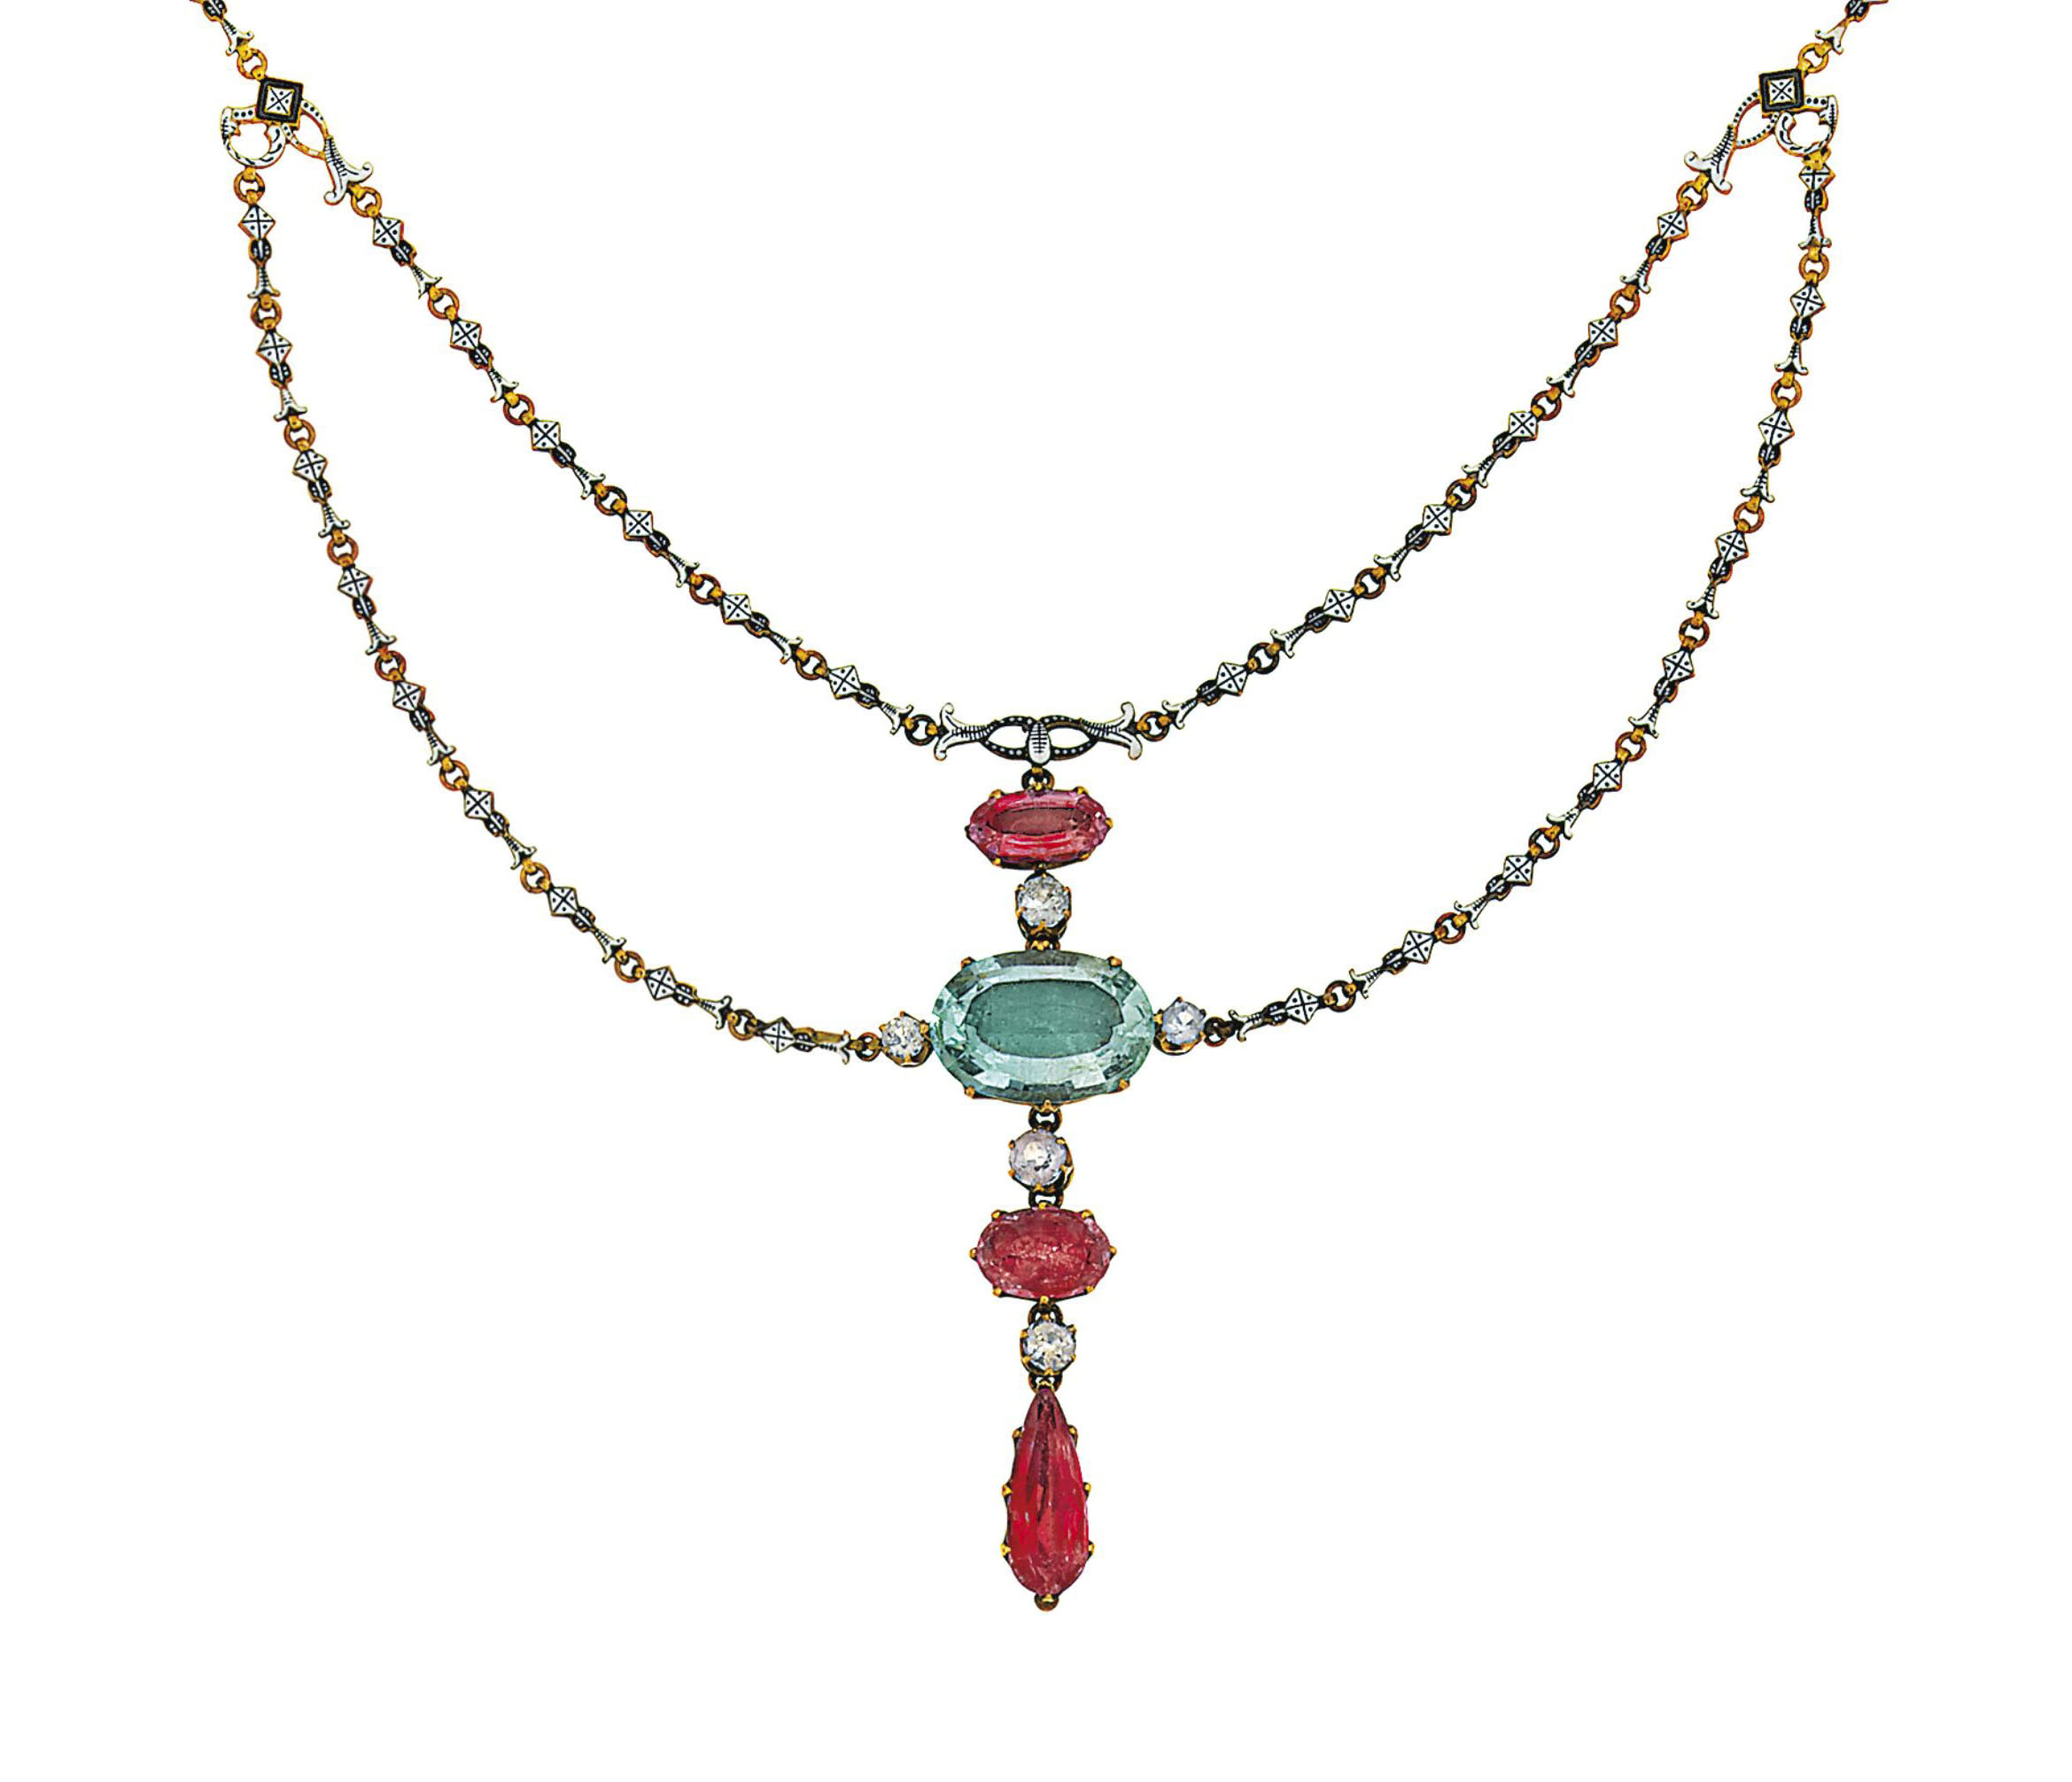 An aquamarine and enamel necklace, by Giuliano